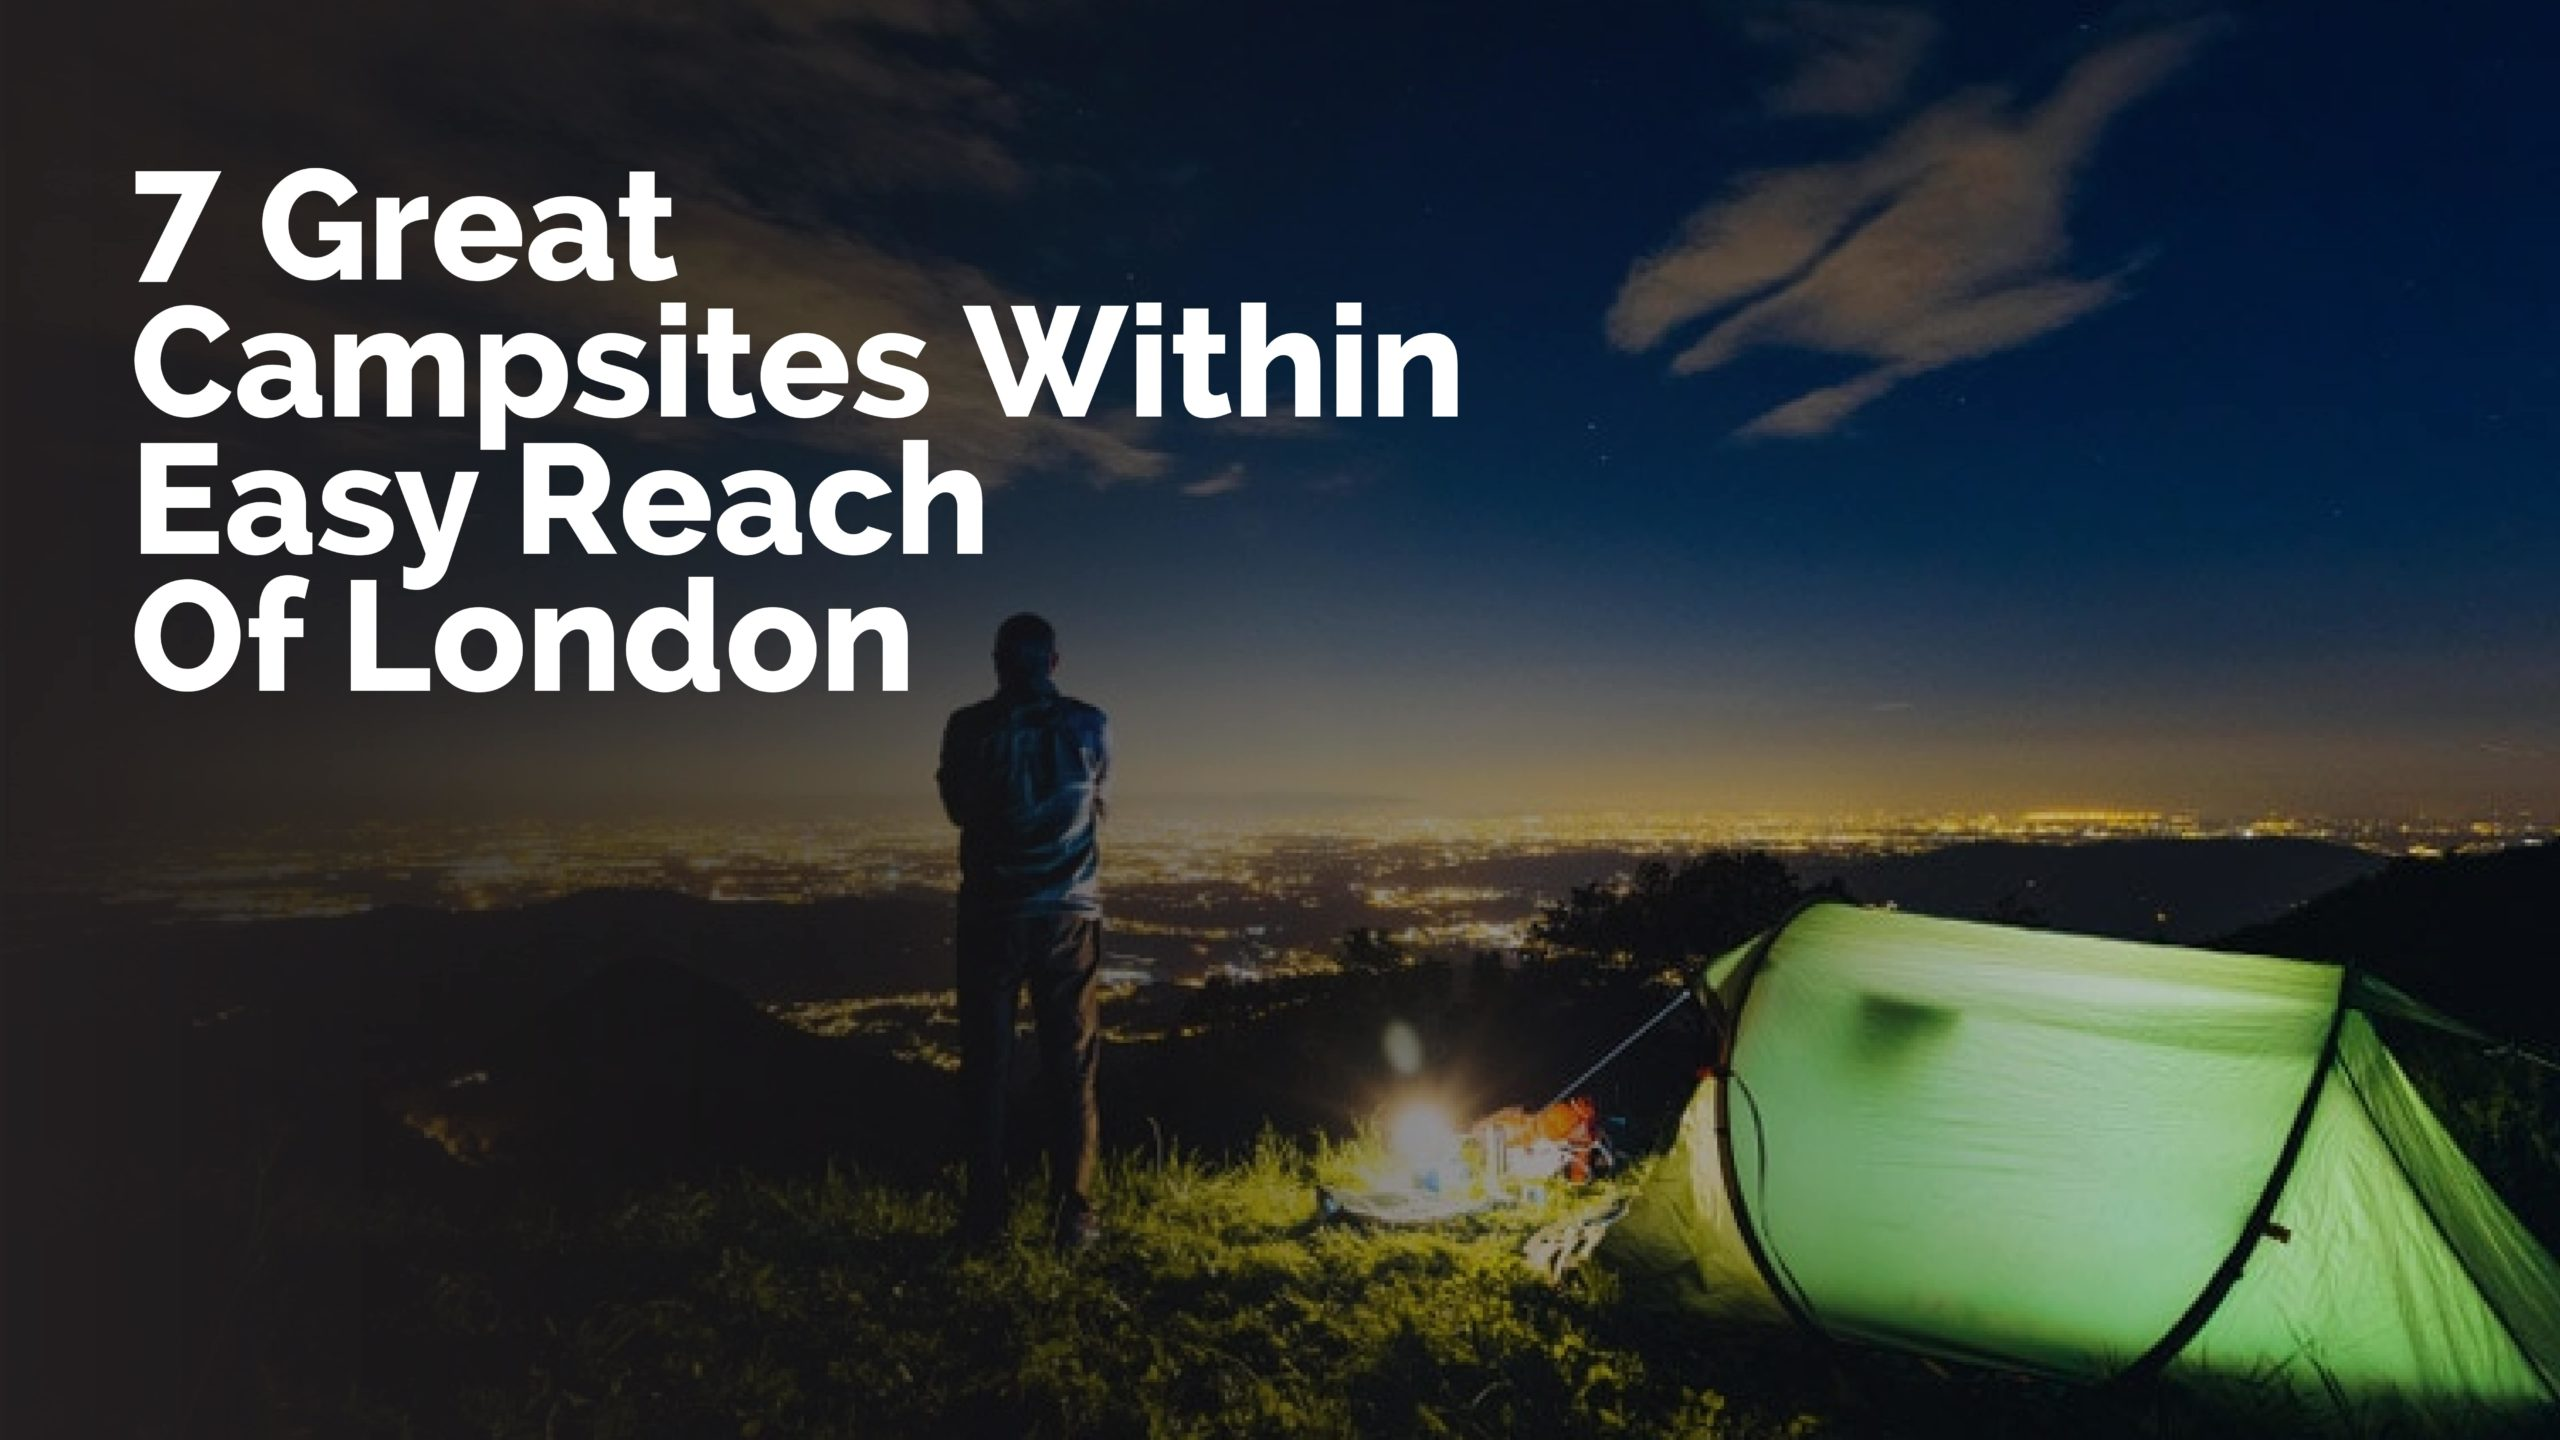 7 Great Campsites Within Easy Reach Of London